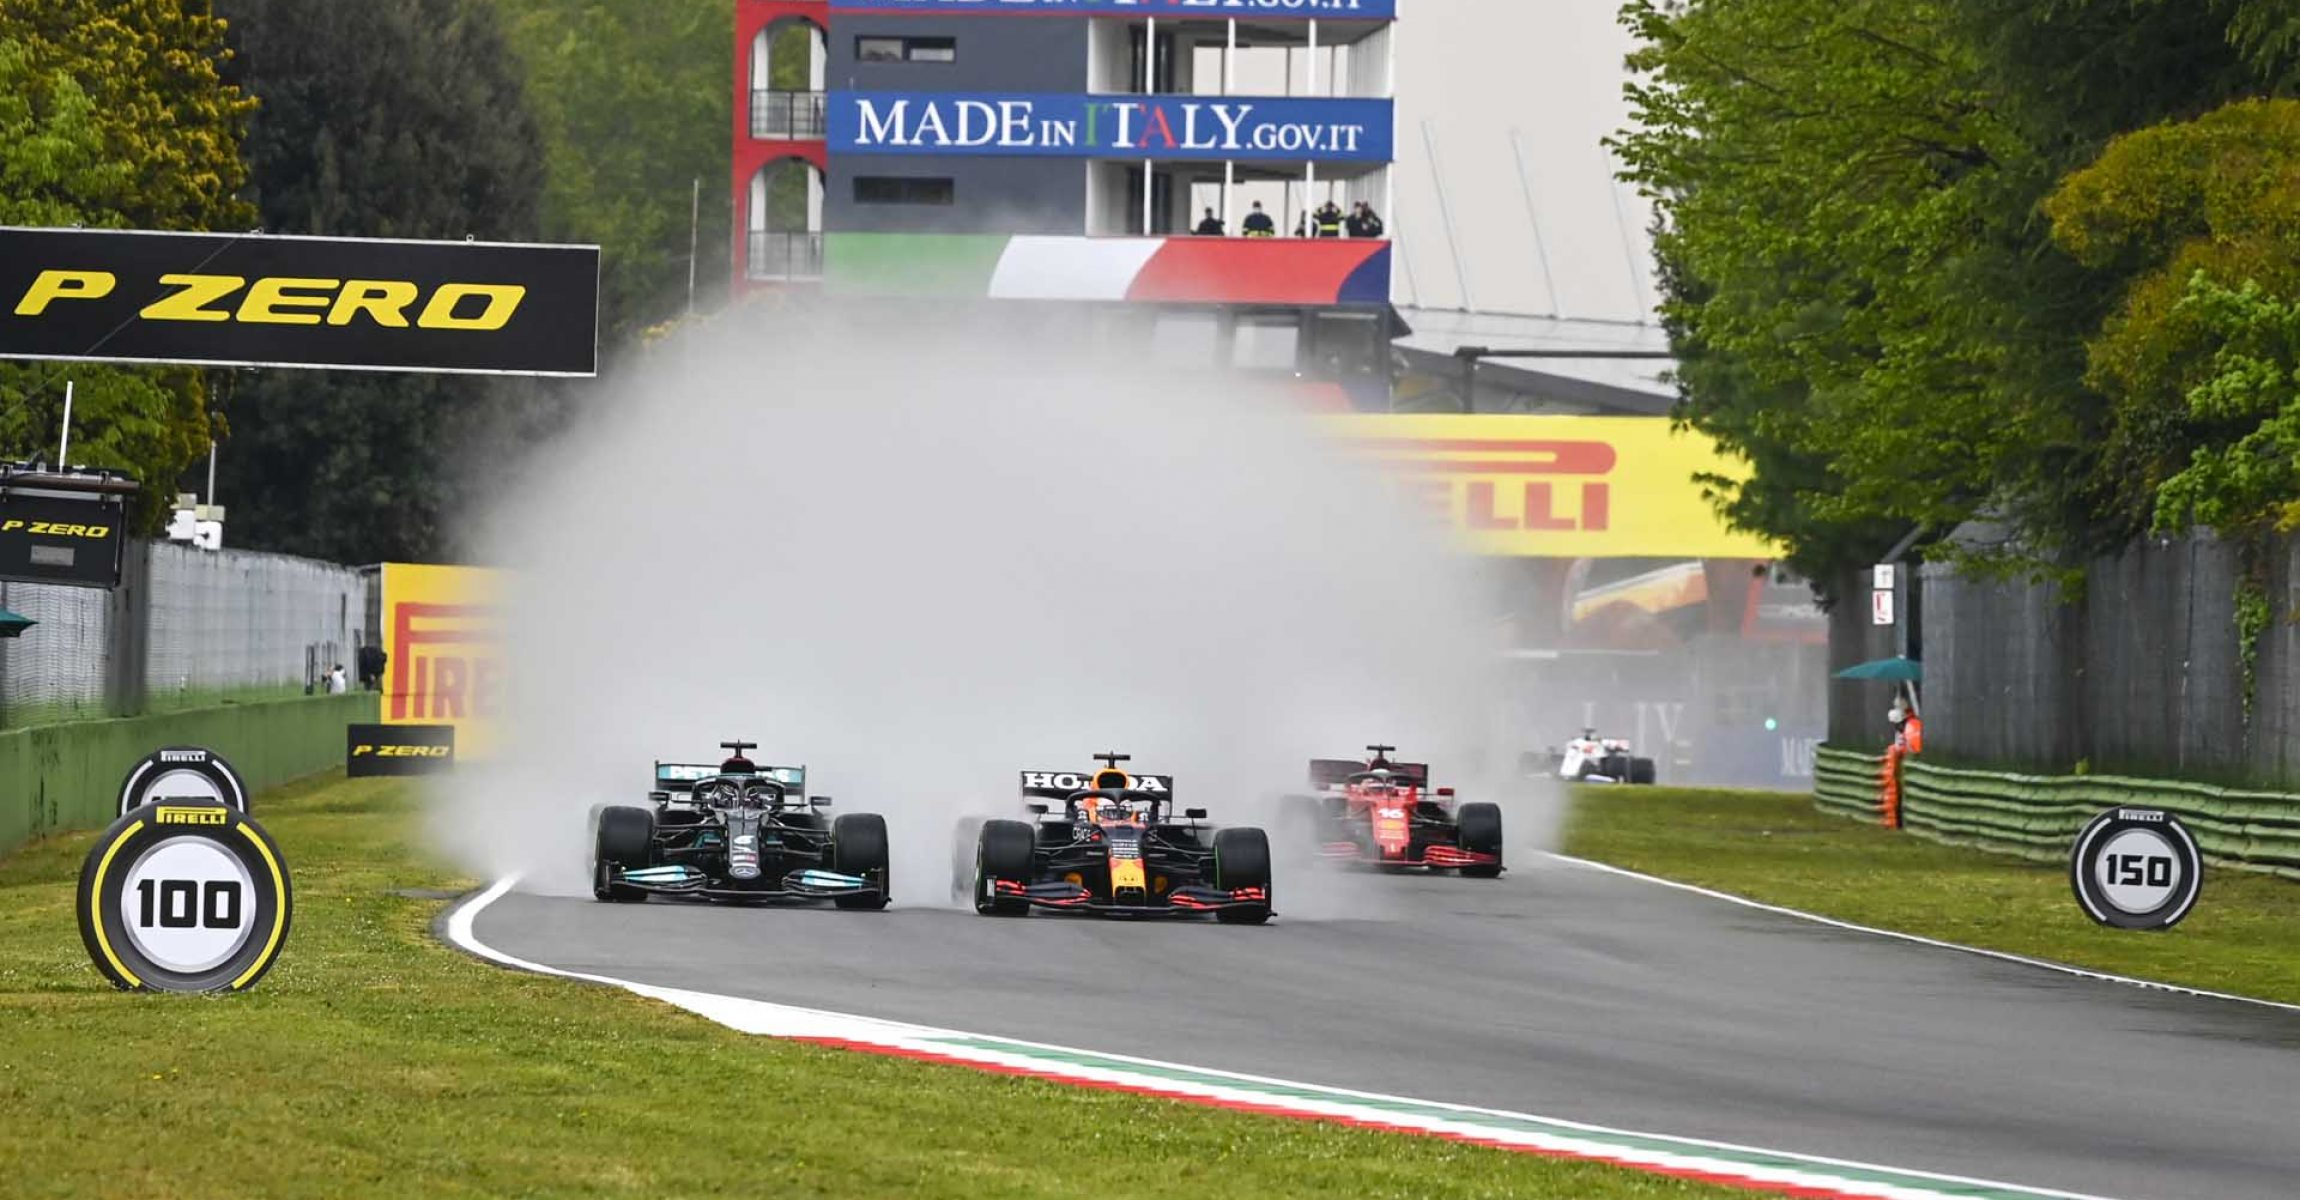 AUTODROMO INTERNAZIONALE ENZO E DINO FERRARI, ITALY - APRIL 18: lh and Max Verstappen, Red Bull Racing RB16B battle at the start of the race during the Emilia Romagna GP at Autodromo Internazionale Enzo e Dino Ferrari on Sunday April 18, 2021 in imola, Italy. (Photo by Mark Sutton / LAT Images)